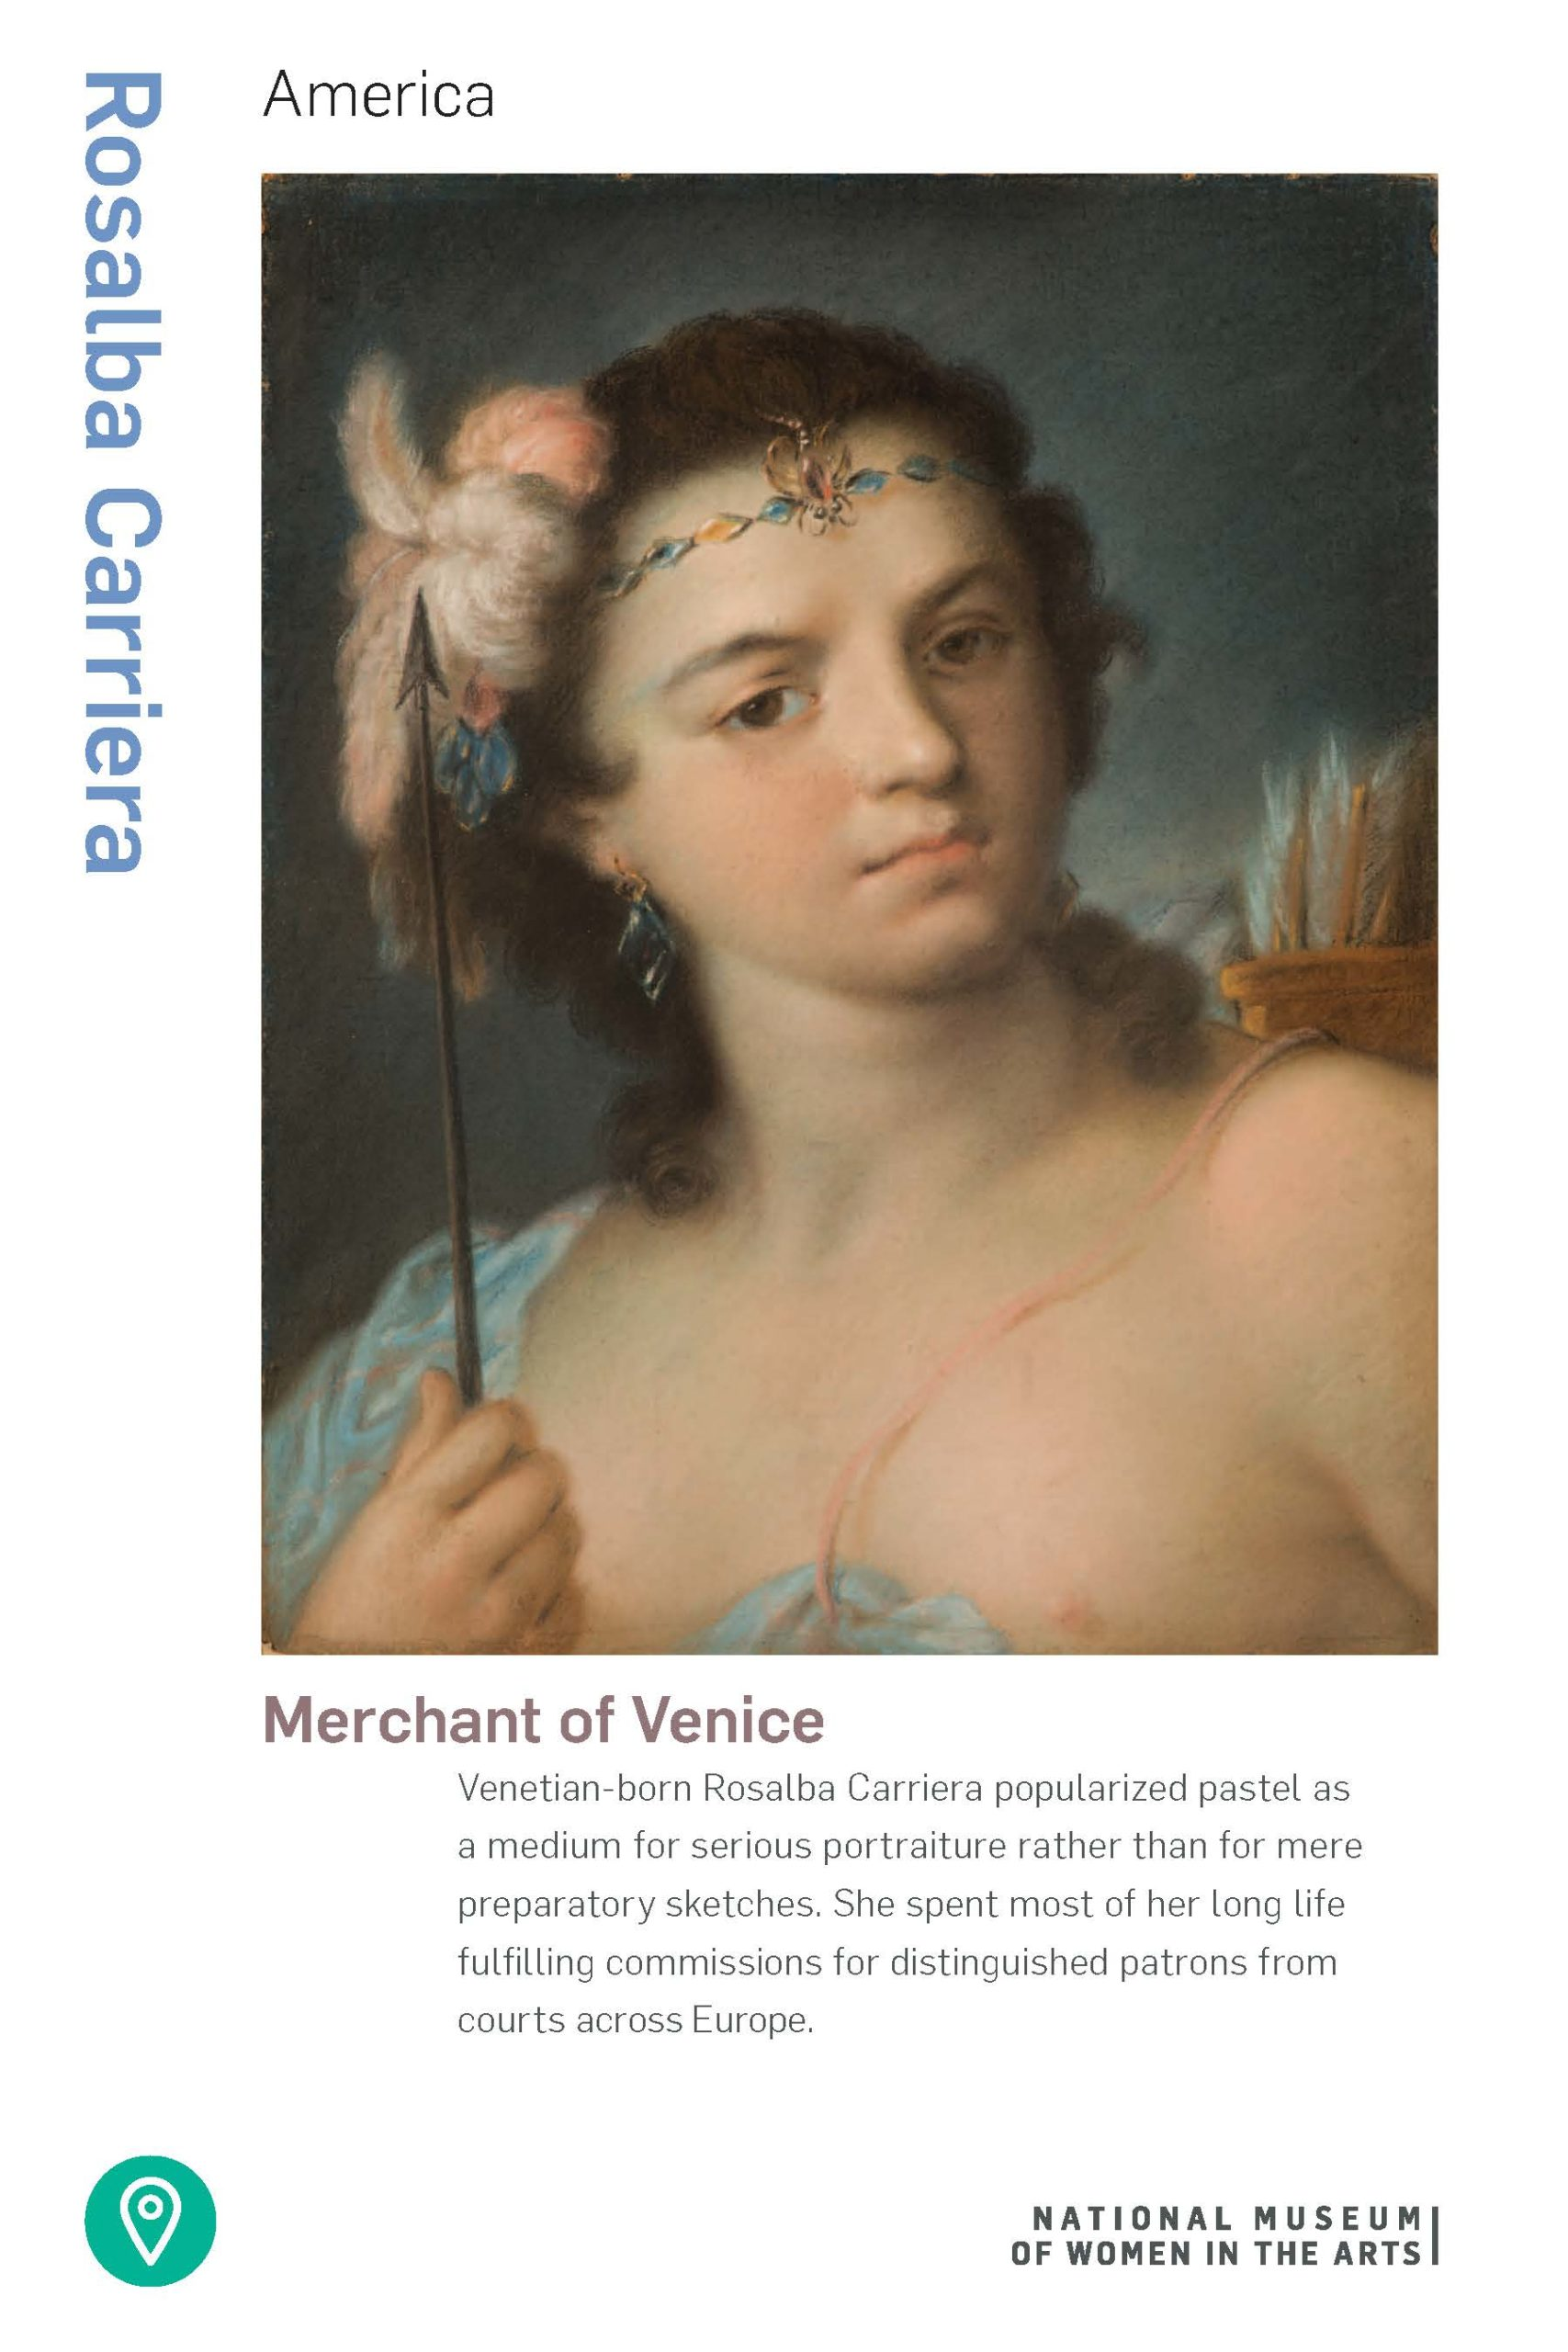 Facts about the artist Rosalba Carriera and her paintings (PDF)